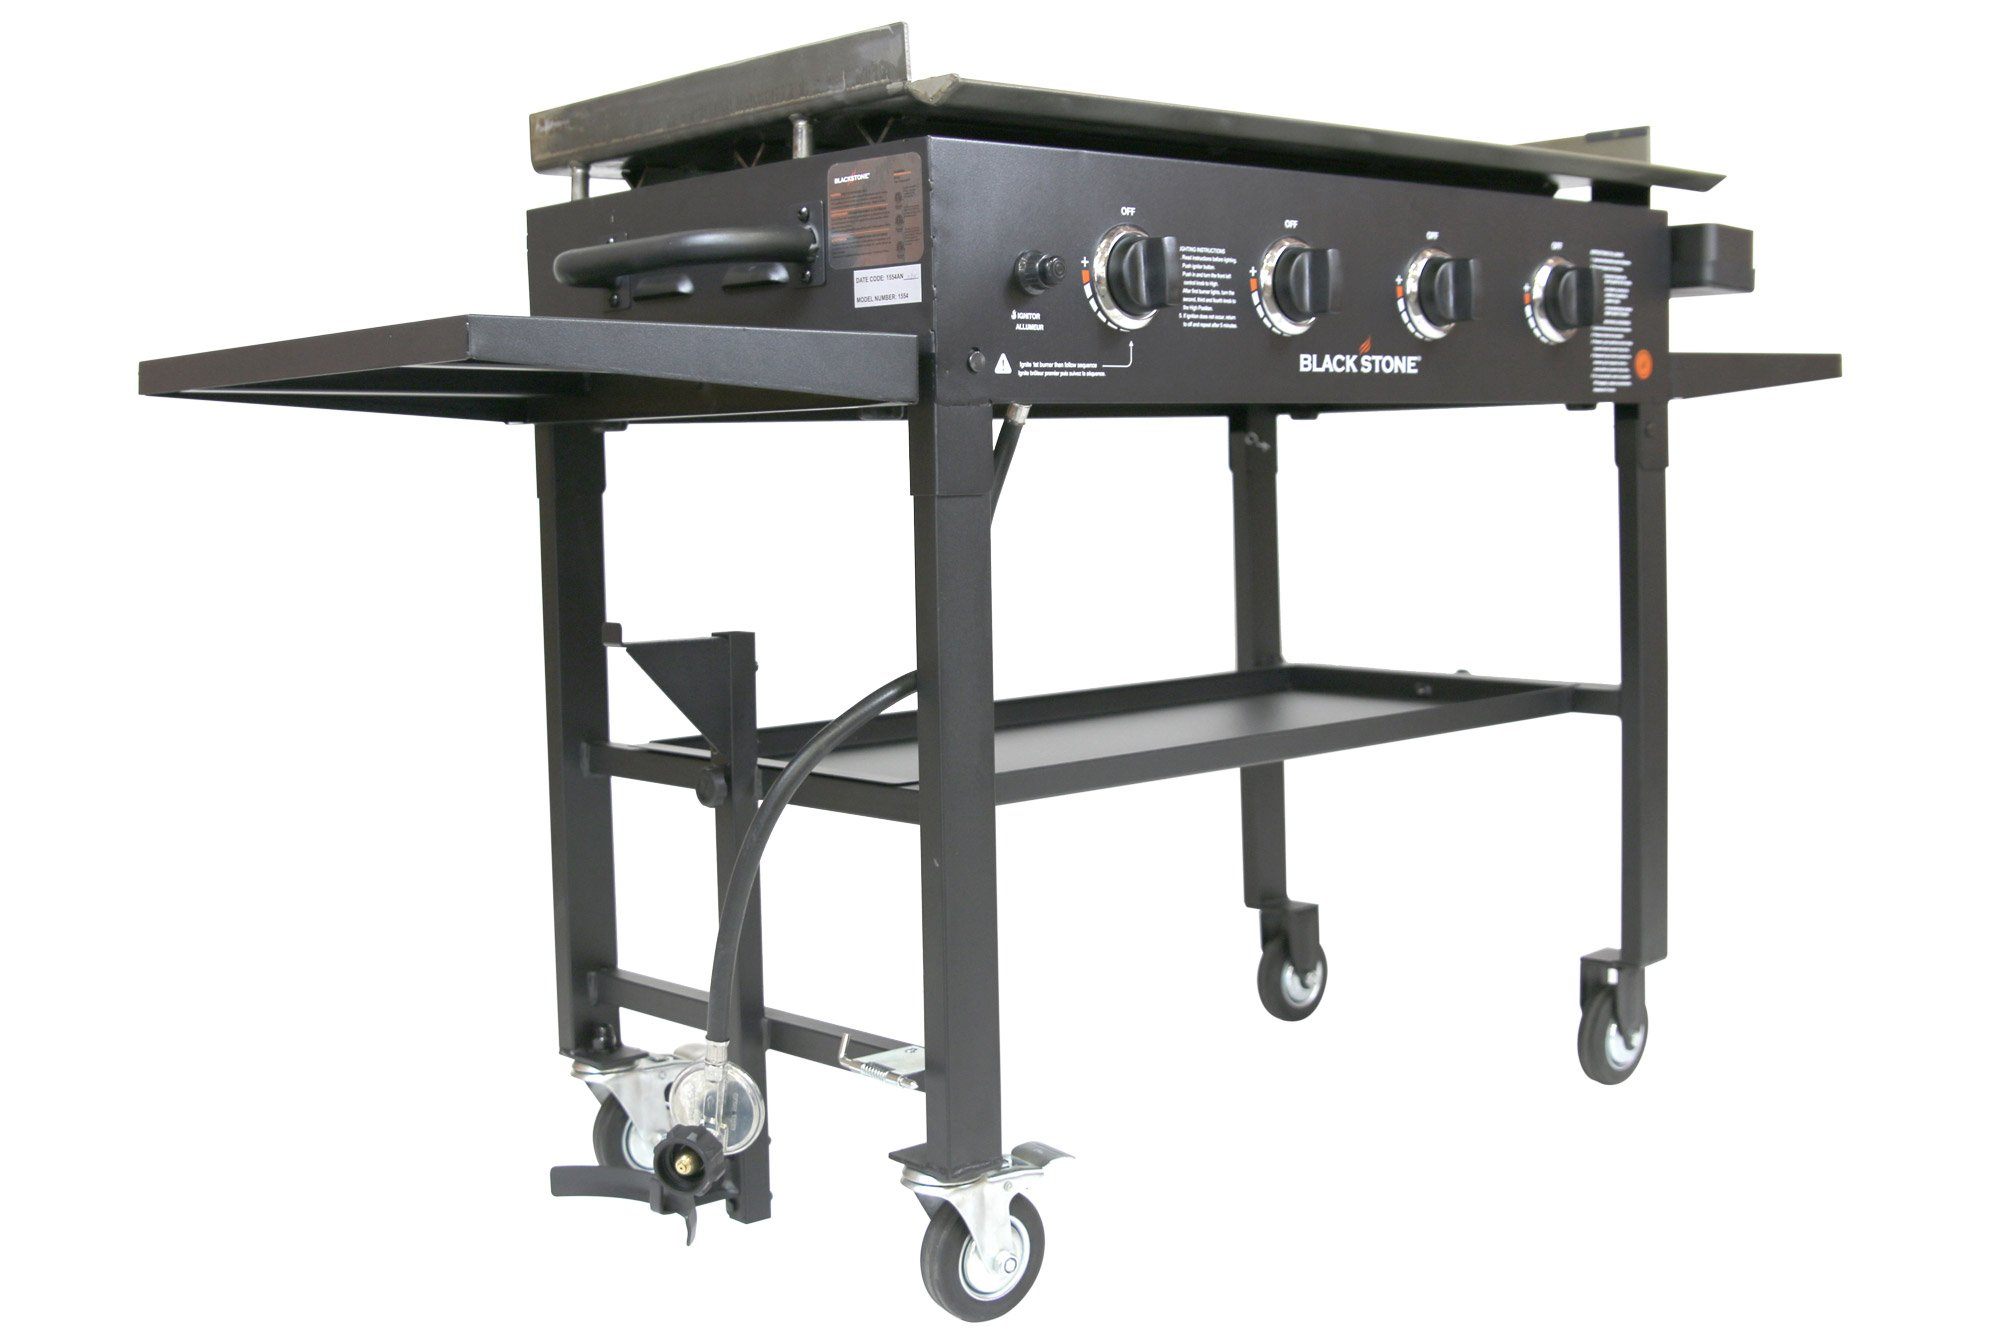 Blackstone 36 inch outdoor propane gas grill griddle for Blackstone griddle